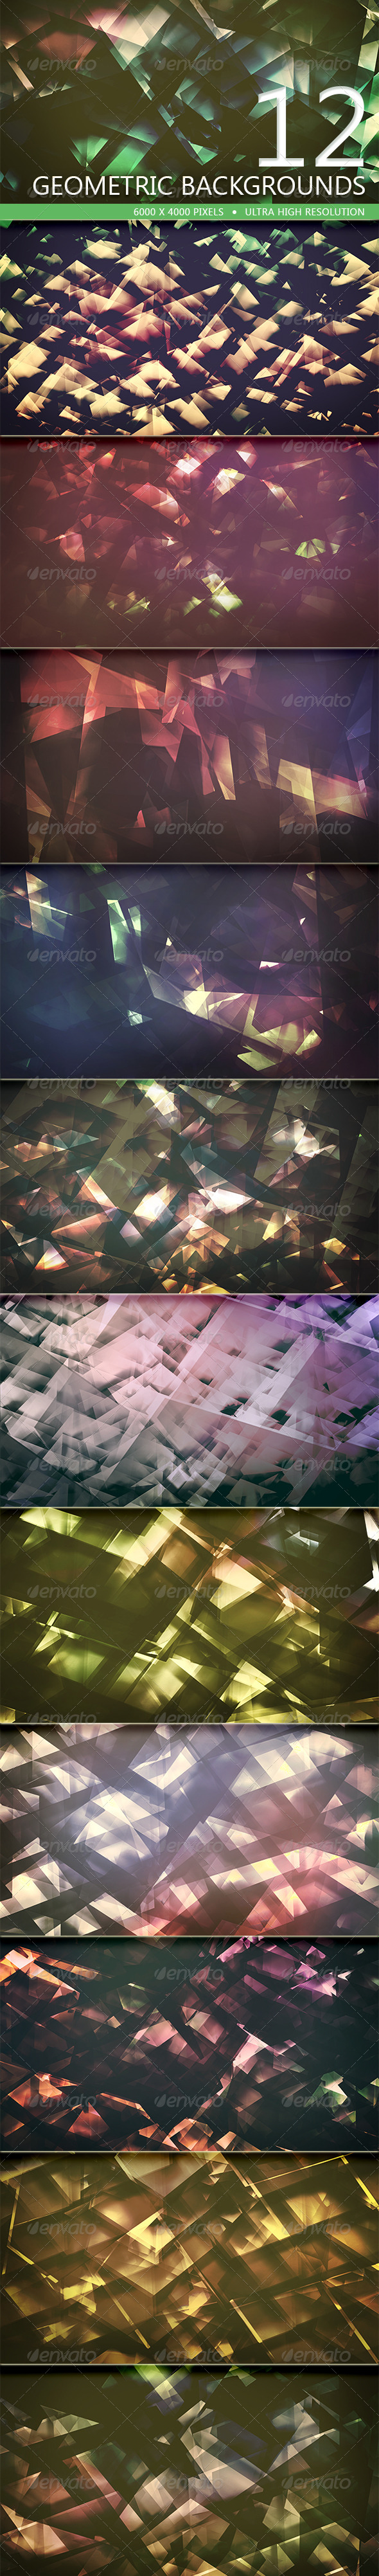 GraphicRiver Geometric Backgrounds Volume 2 5197411